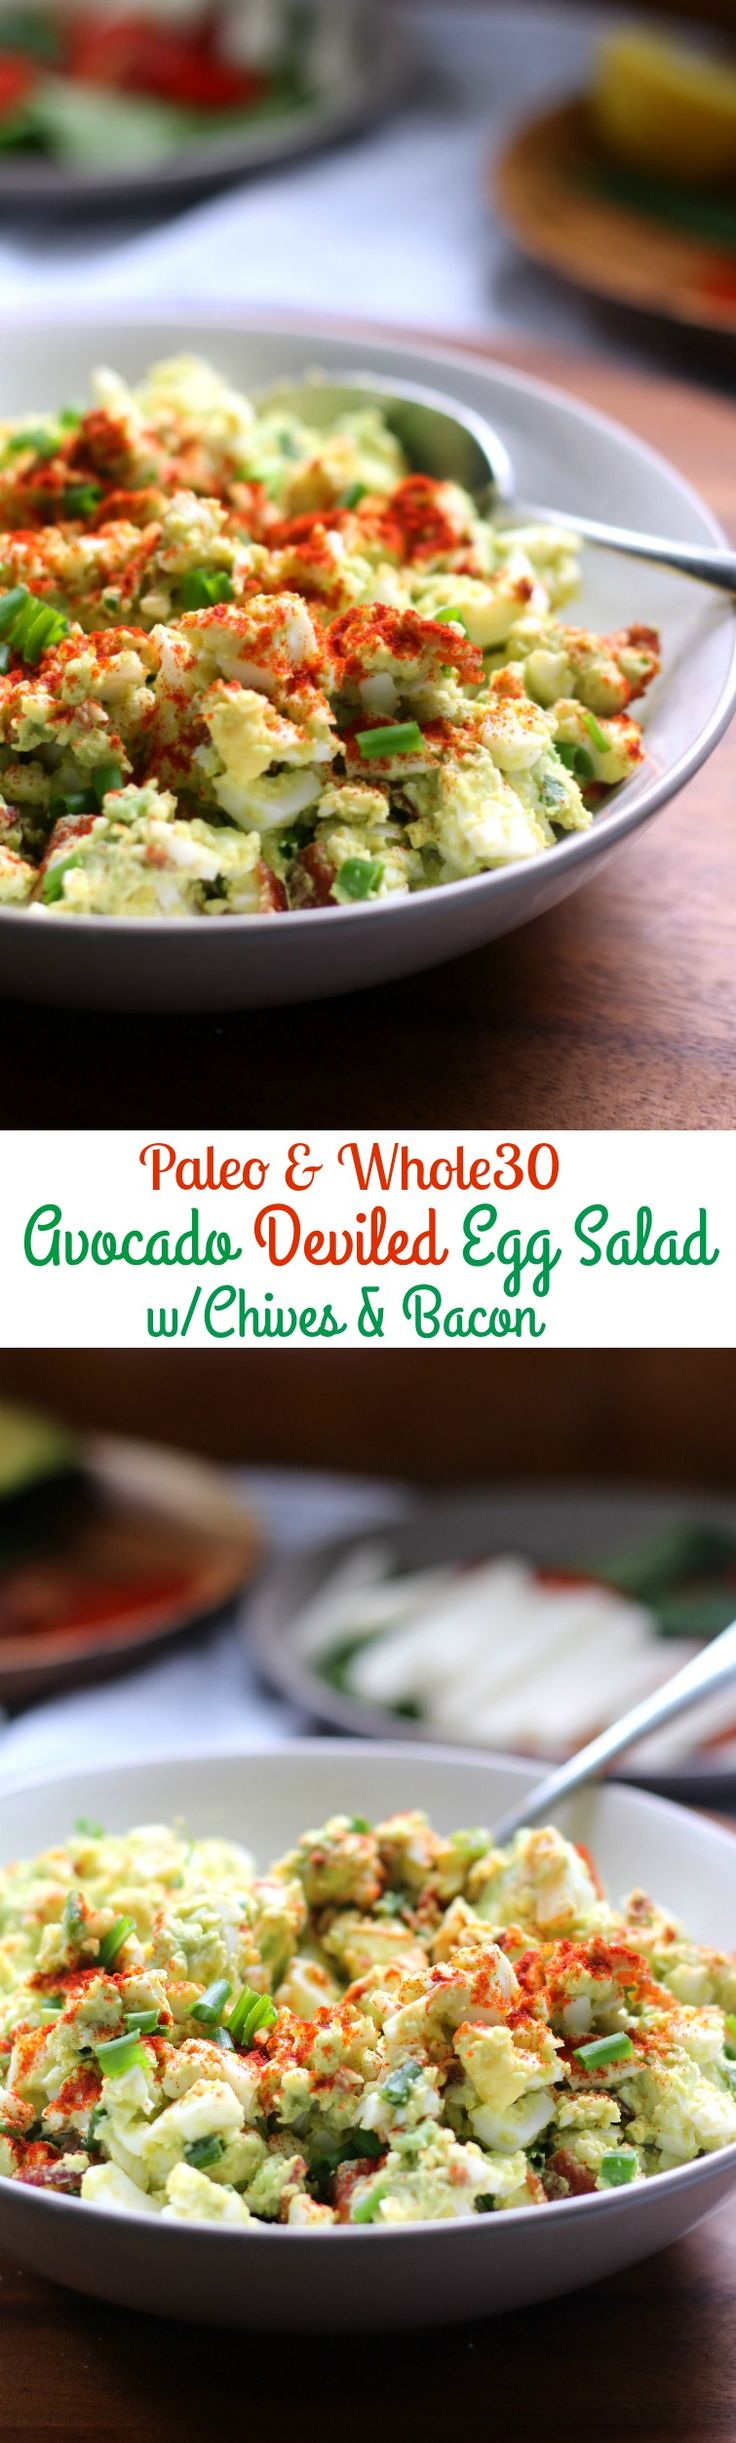 deviled avocado egg salad that's fast, healthy, Paleo and Whole30 friendly and contain NO mayo!  Bacon and chives give this savory Paleo egg salad tons of flavor! (Fast Paleo Meals)